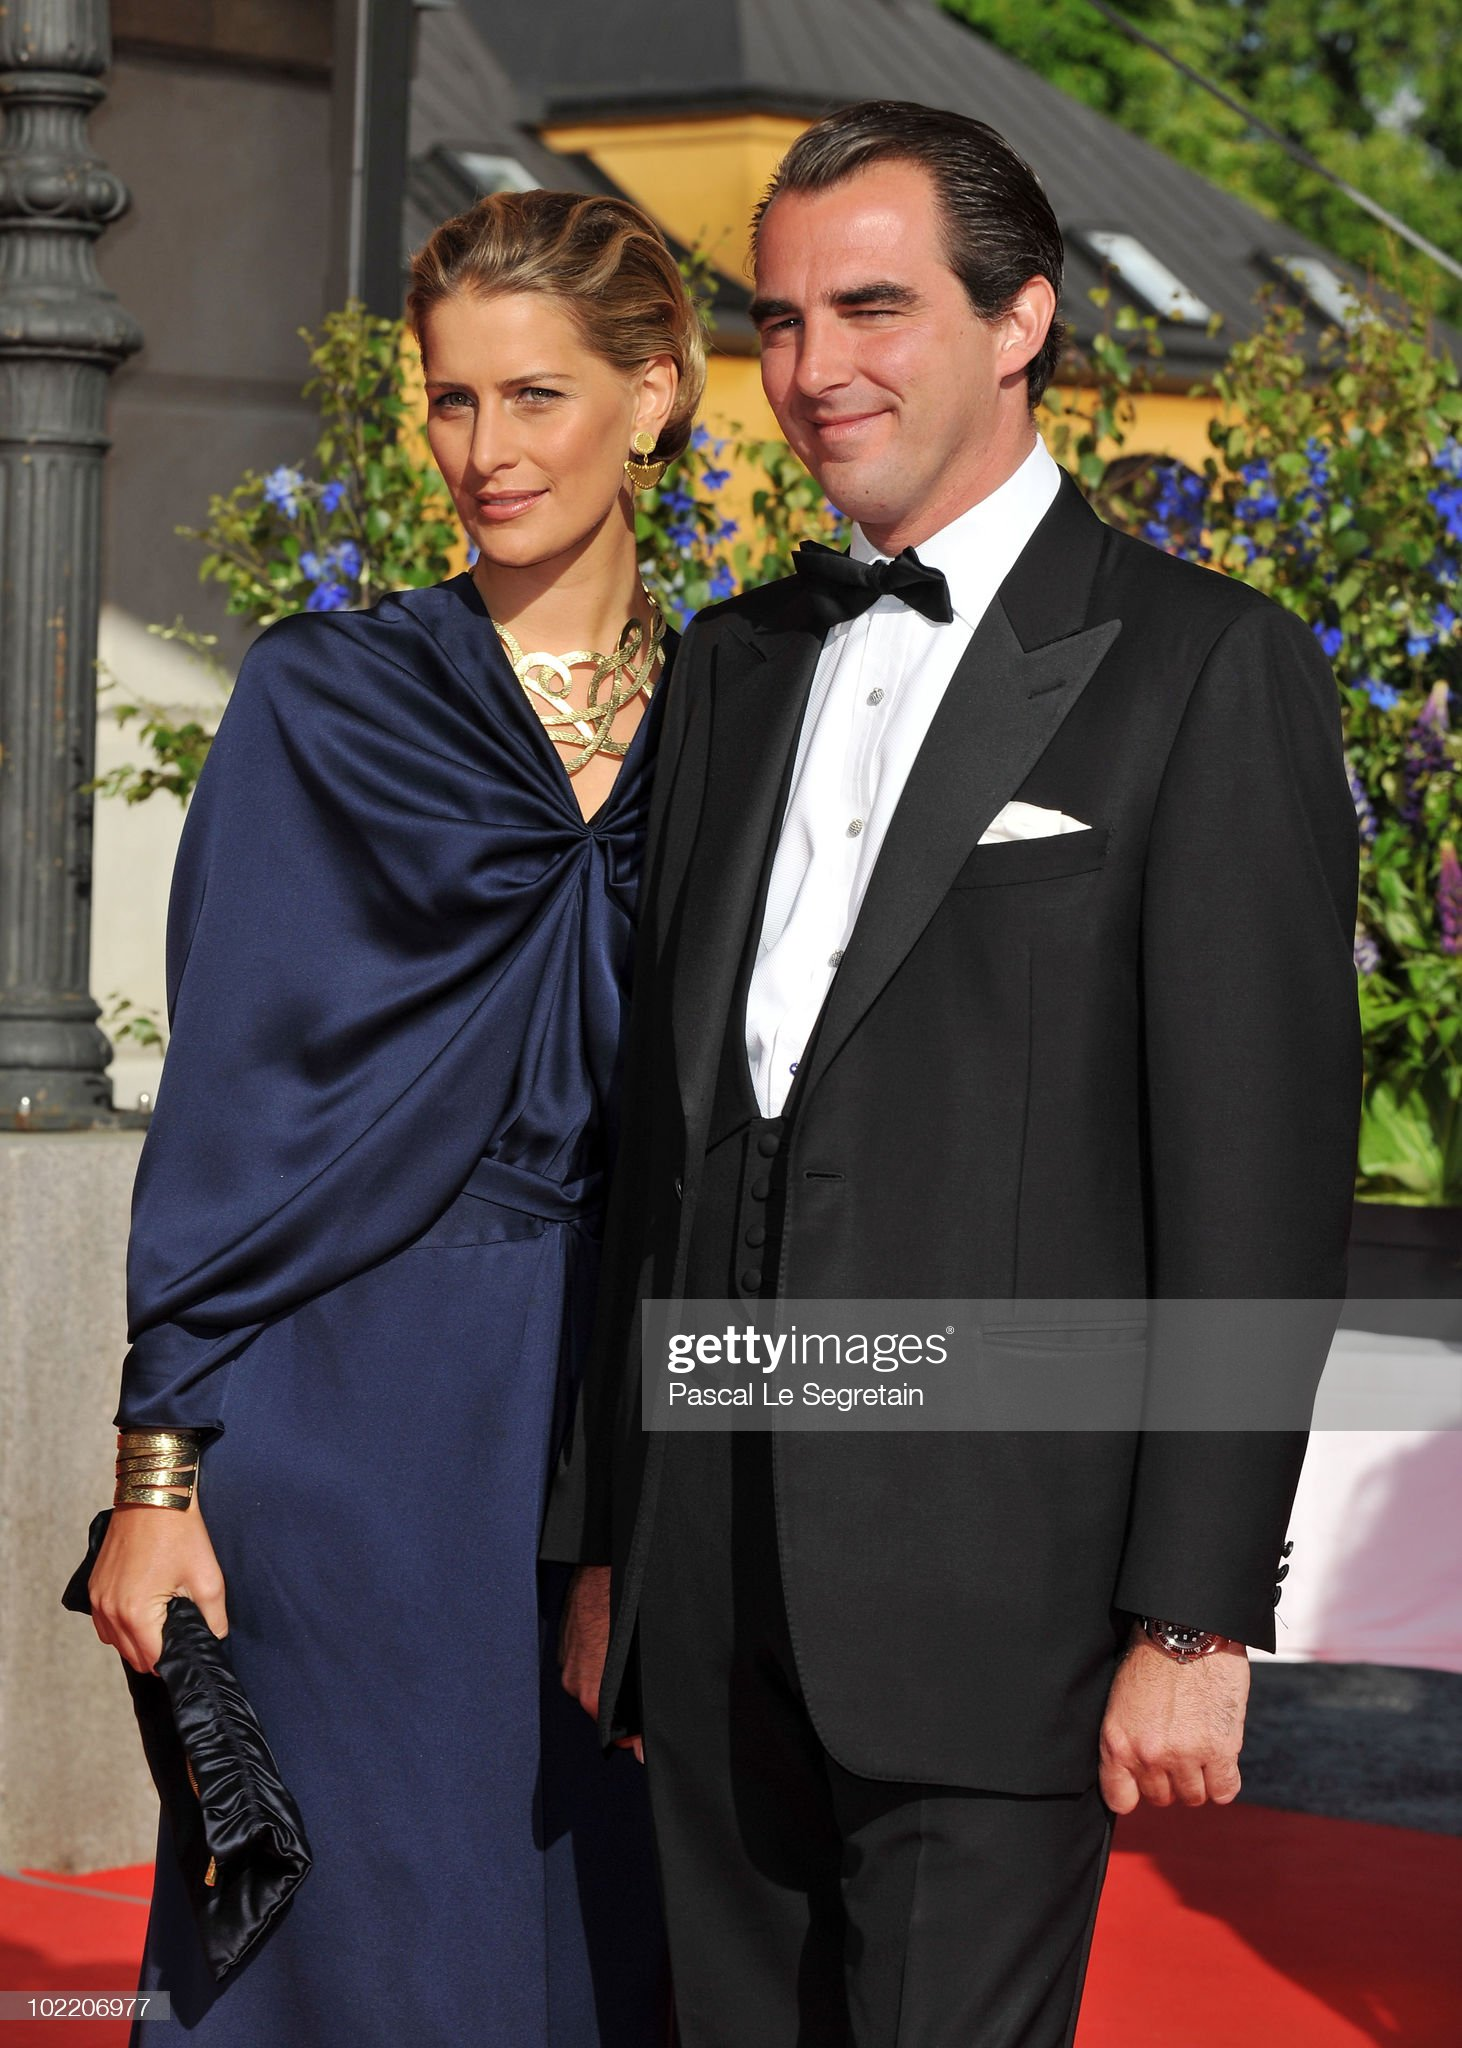 Crown Princess Victoria & Daniel Westling: Pre Wedding Dinner - Arrivals : News Photo